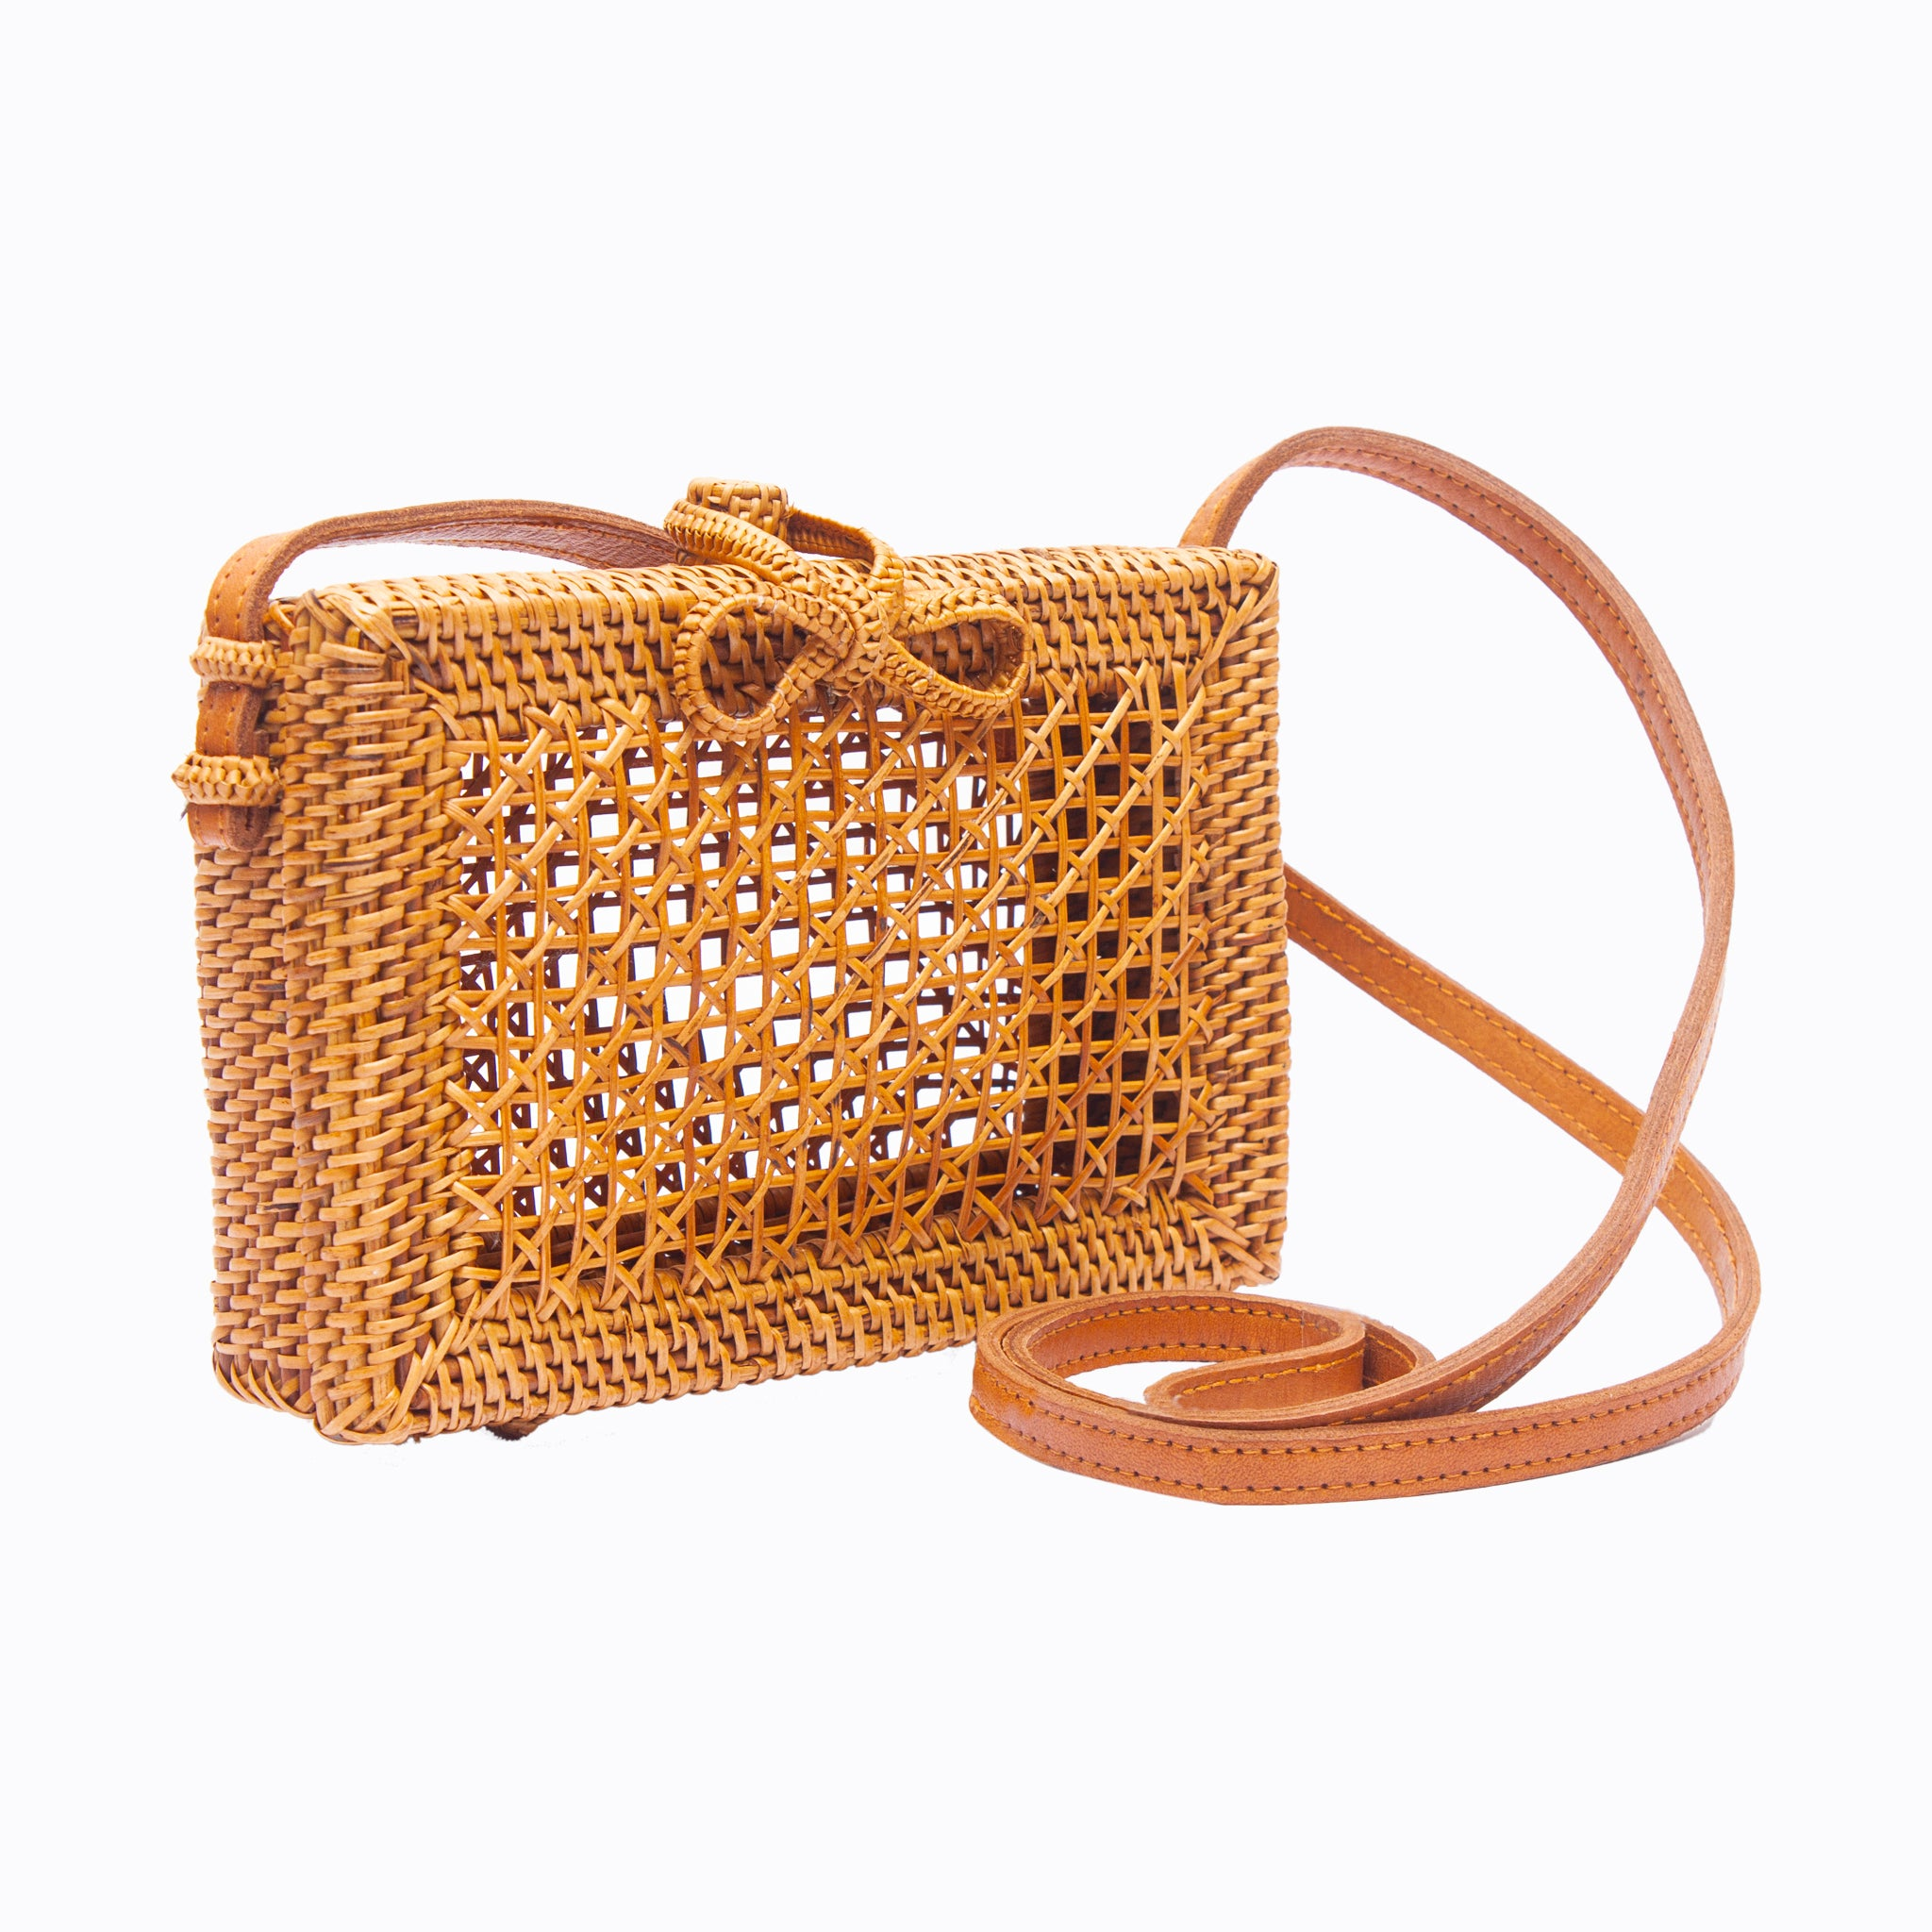 Rattan Basket Handbags for Women